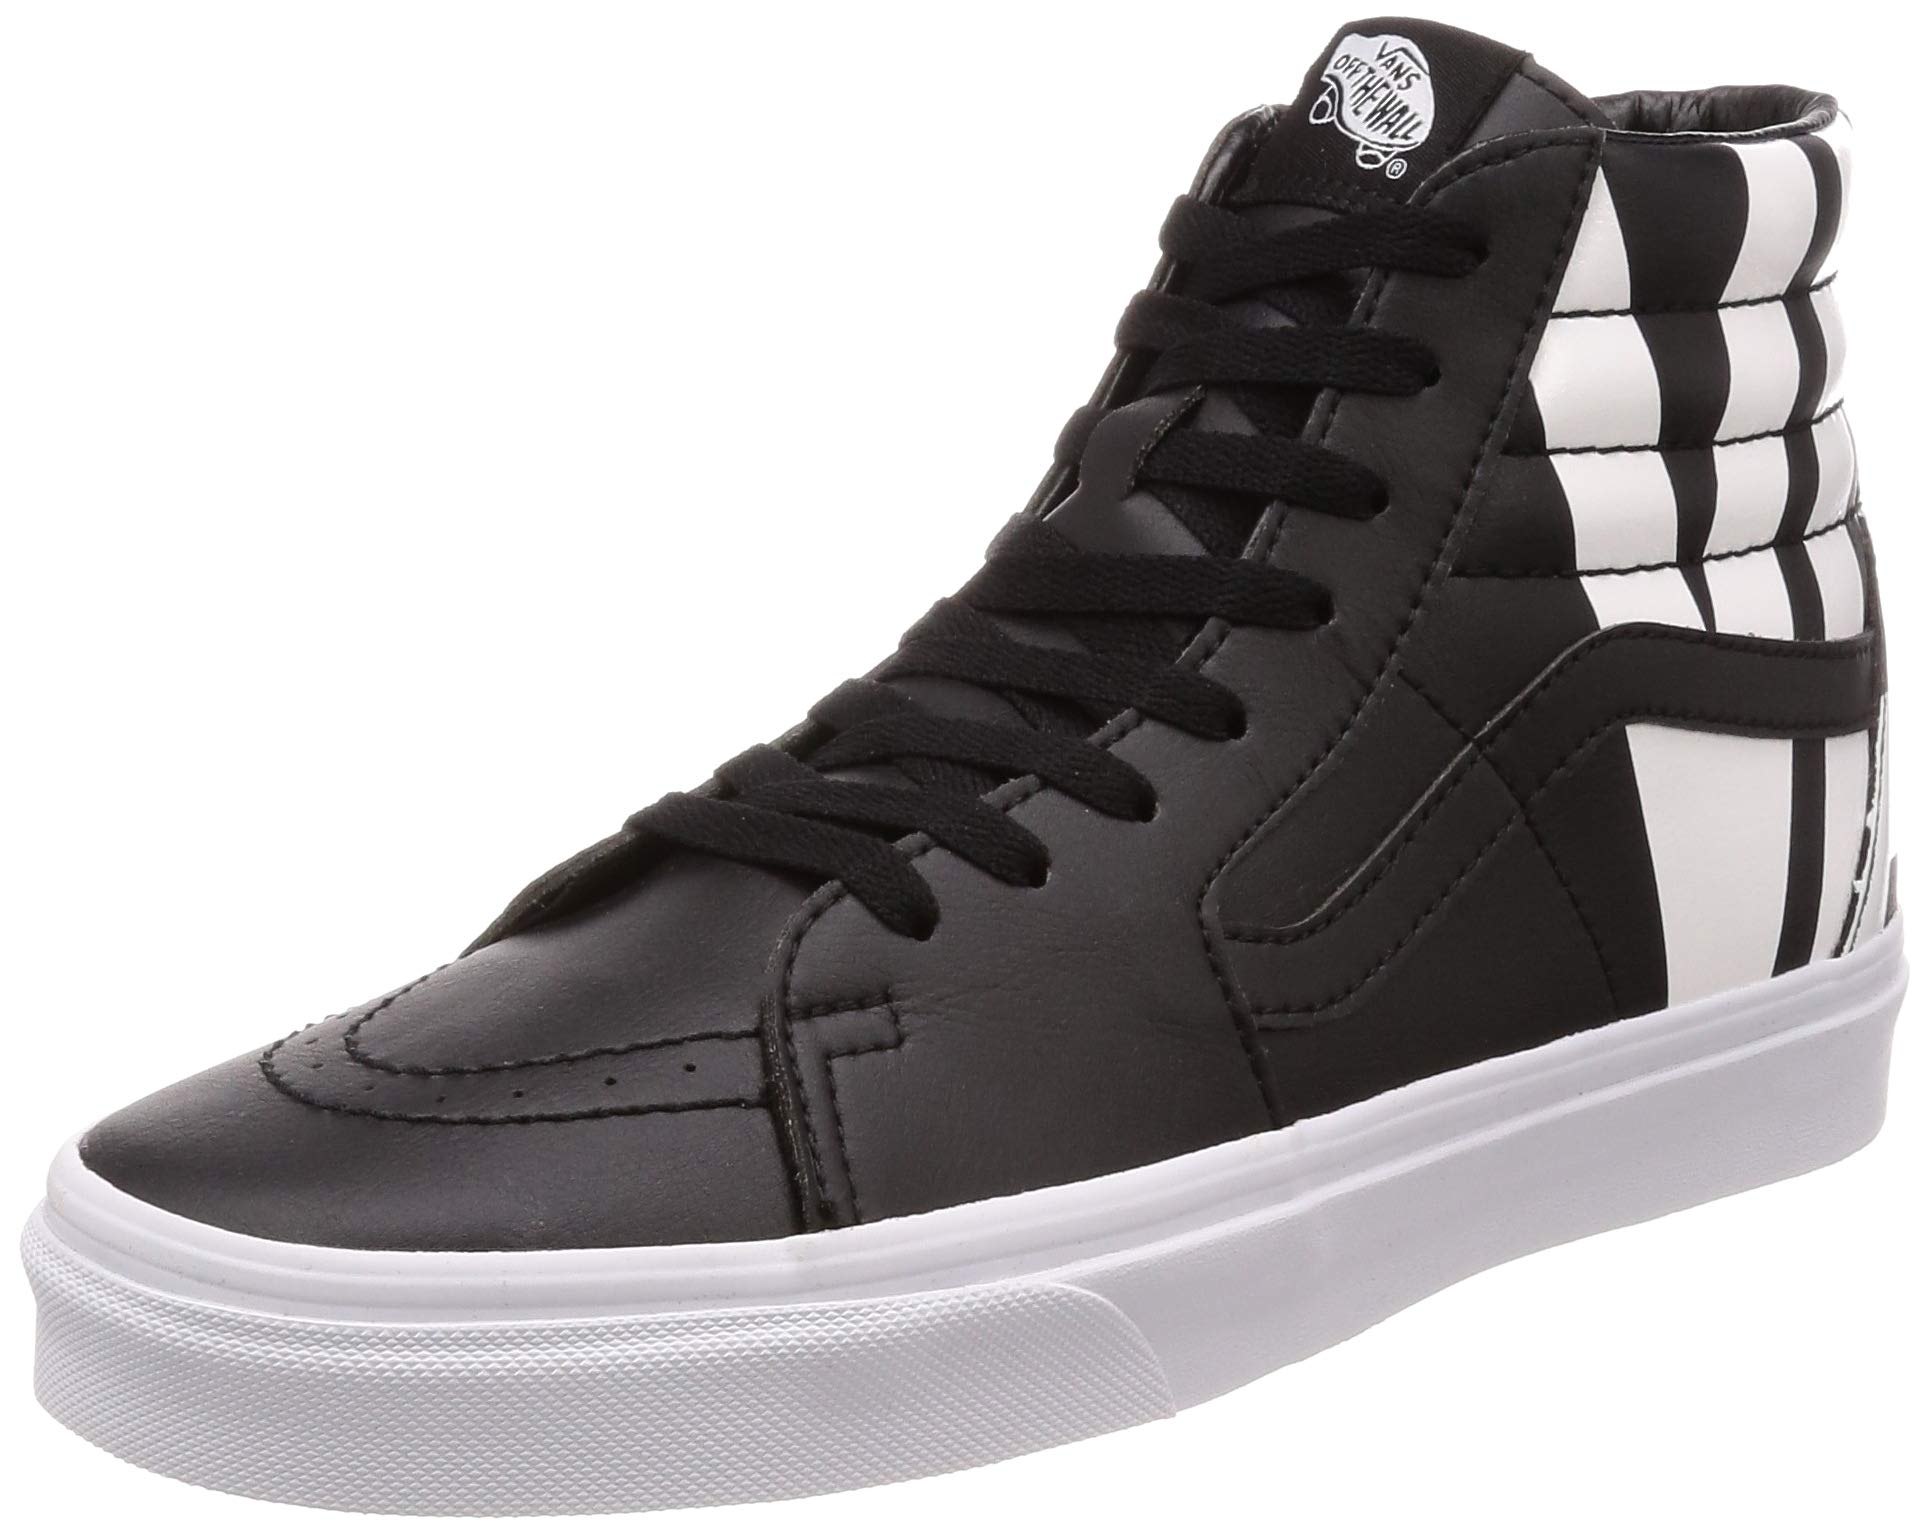 1a1a336e04 Galleon - Vans Sk8-Hi Black White (6.5 Women   5 Men M US)